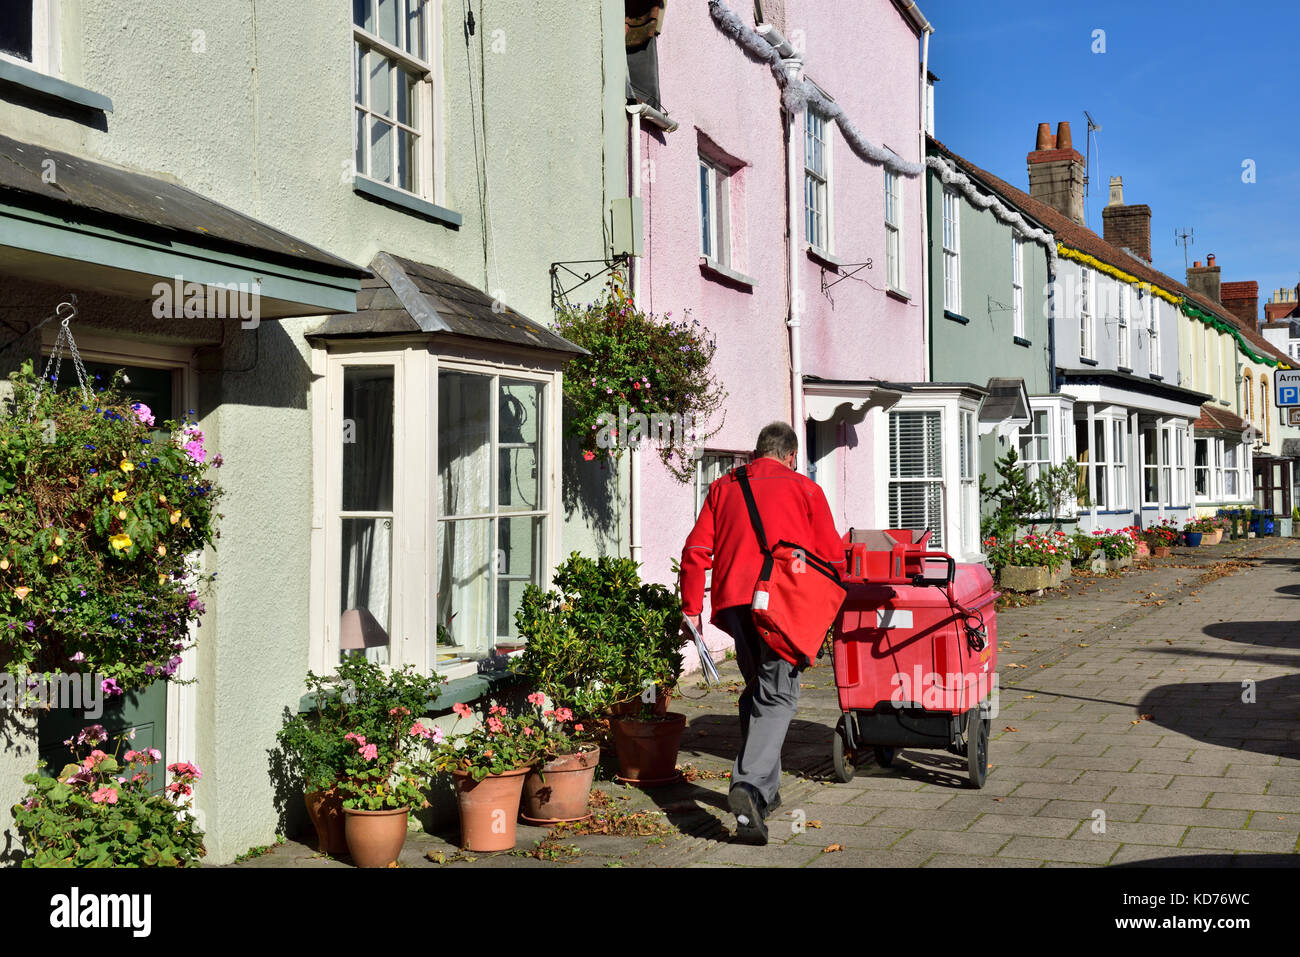 Postman on rounds in row of terrace houses on high street in small English market town of Thornbury, South Gloucestershire Stock Photo